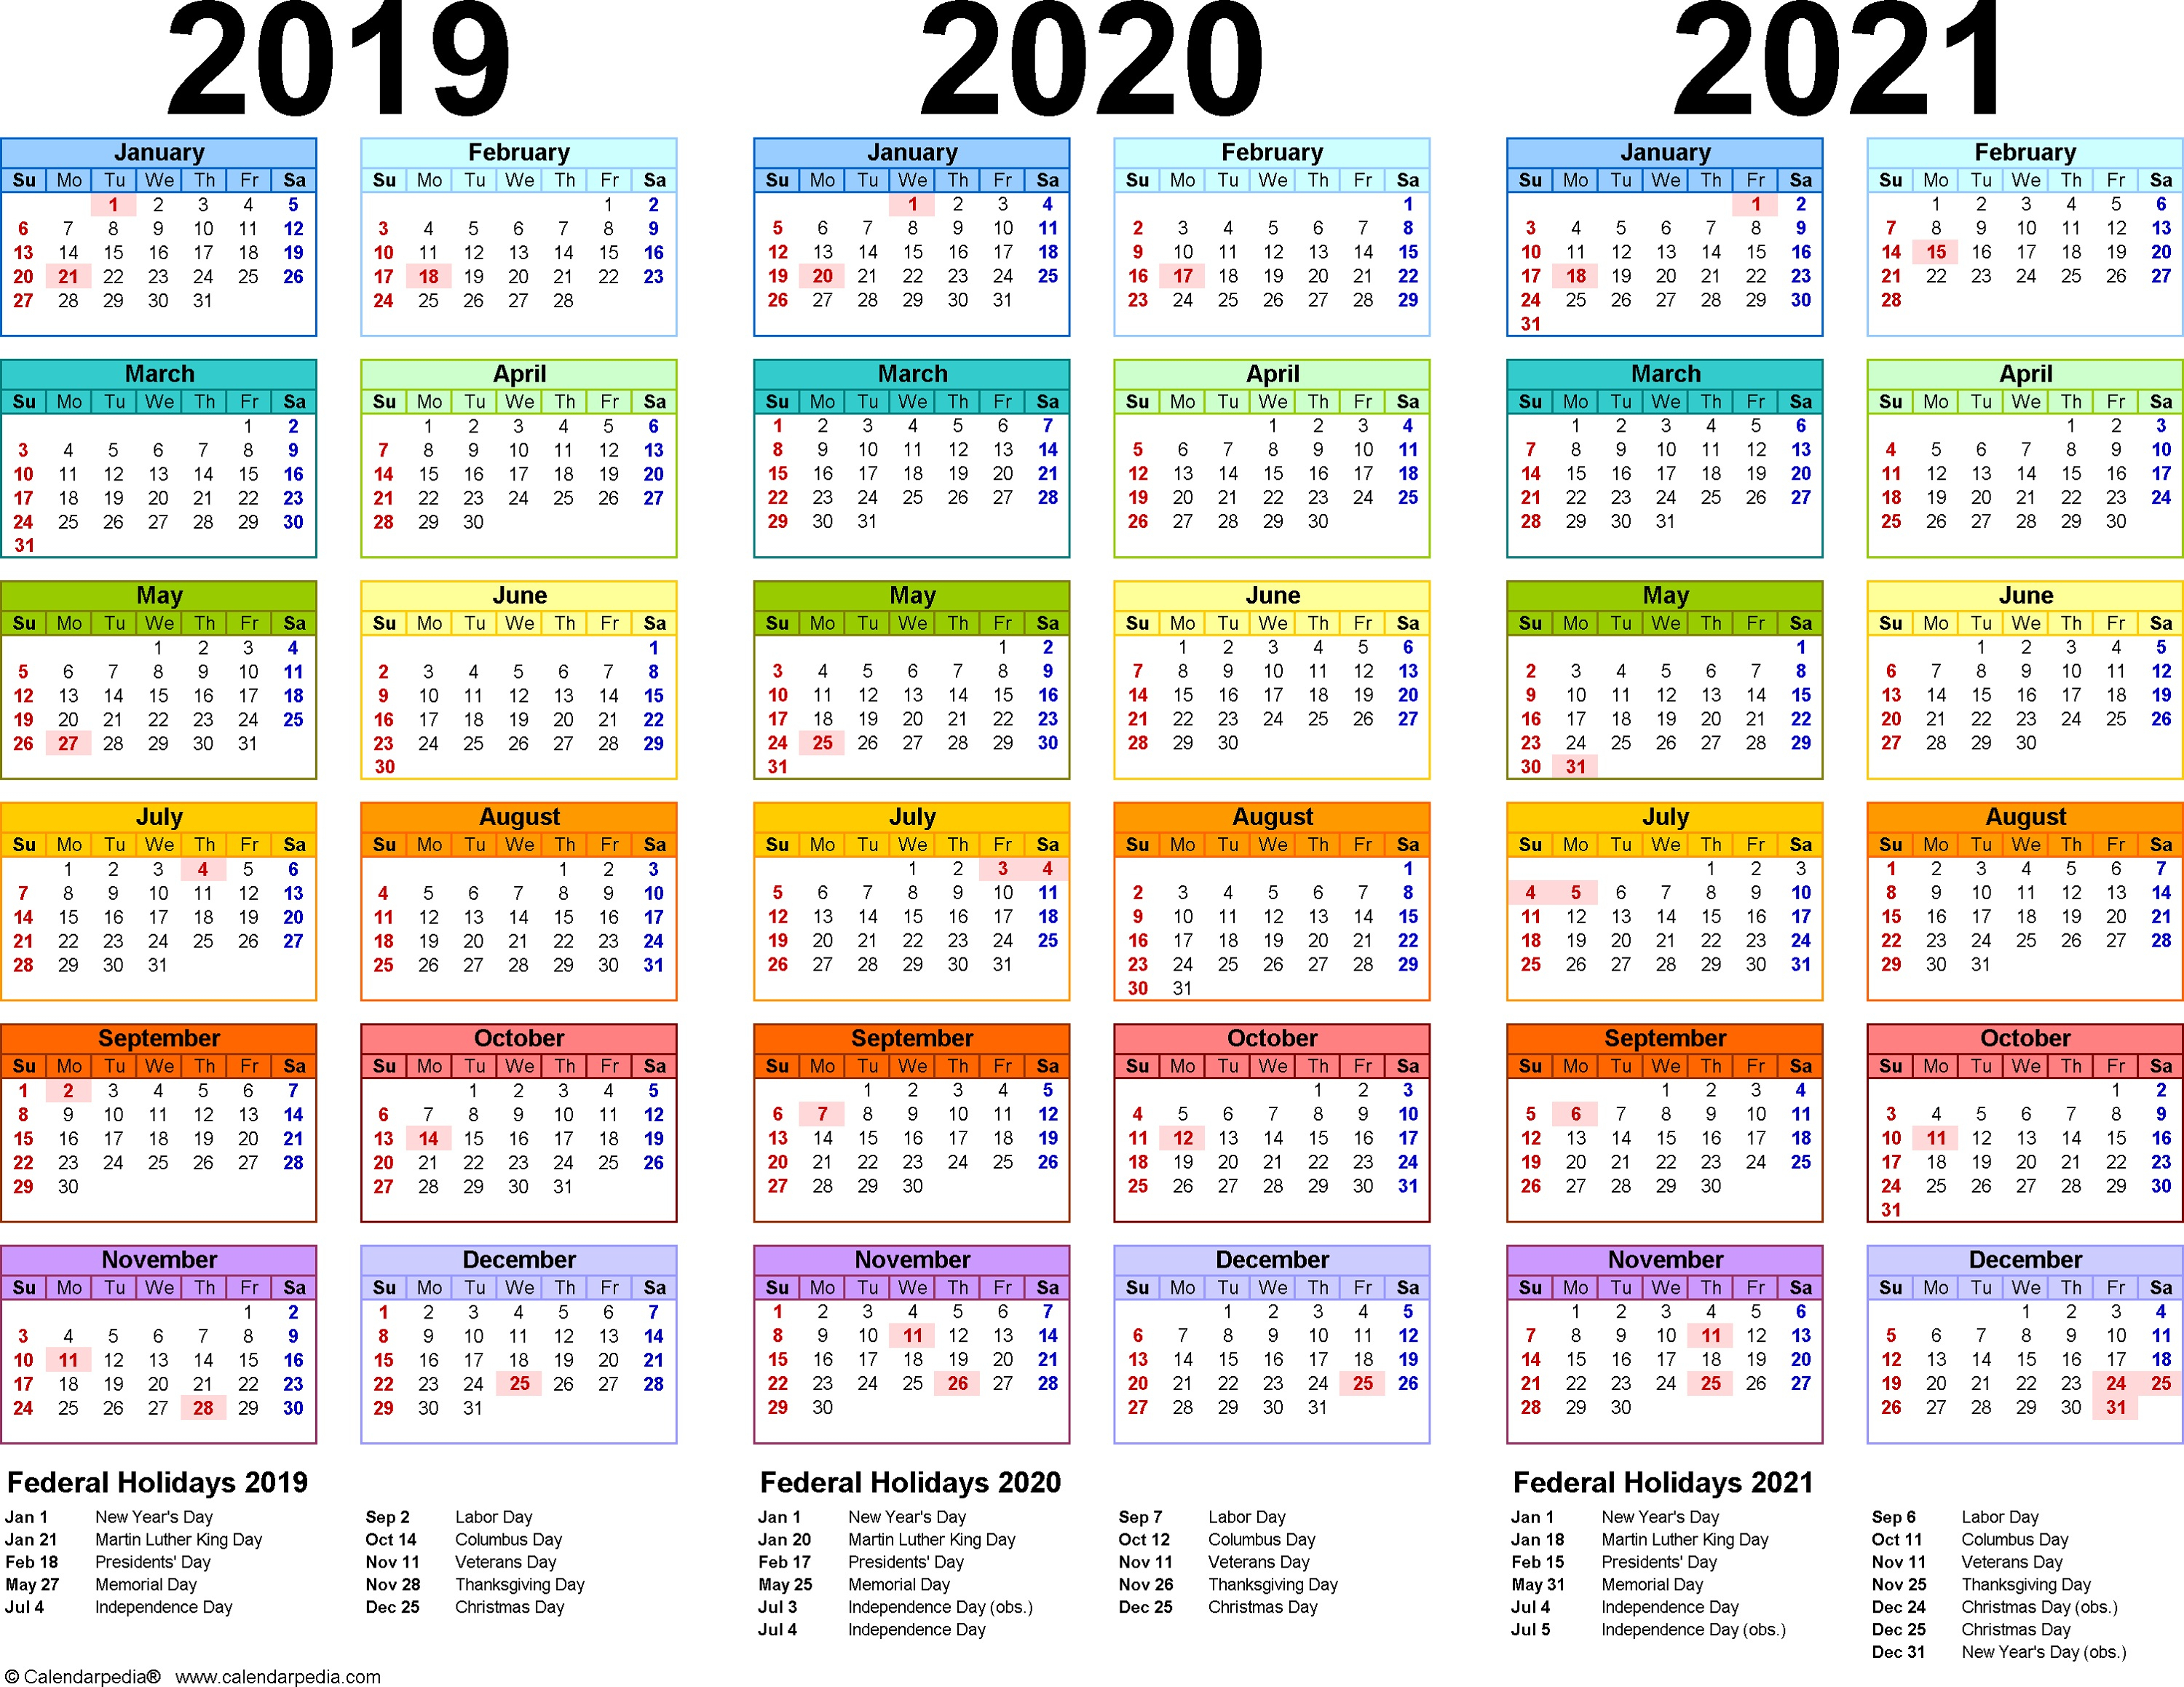 3 Year Calendar Printable 2019 2020 2021 For All Ages For within 3 Year Calendar 2020 To 2021 Printable